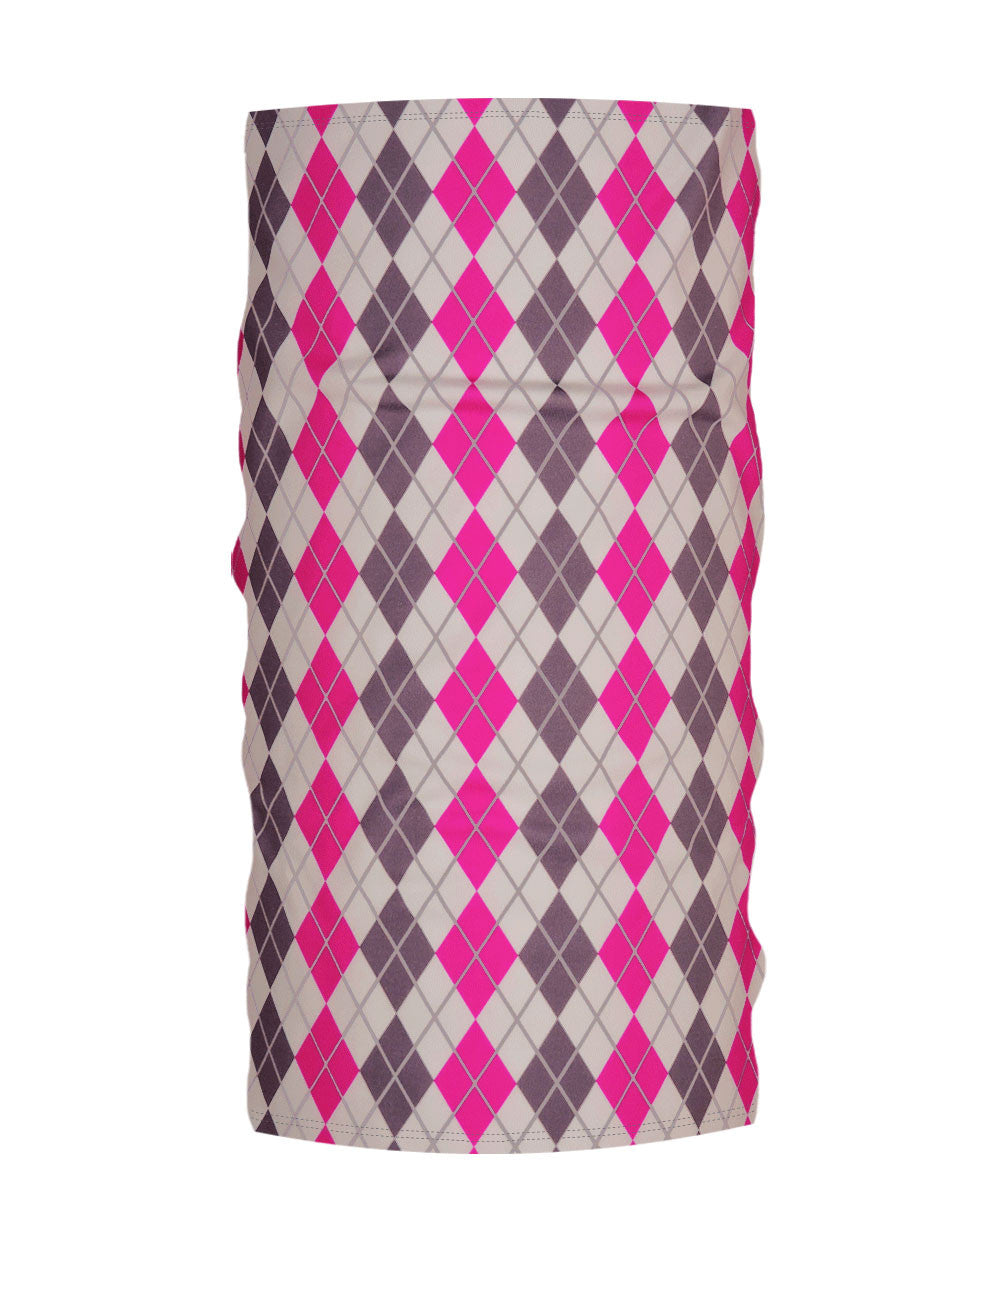 Pink-Grey Argyle WinterTube™